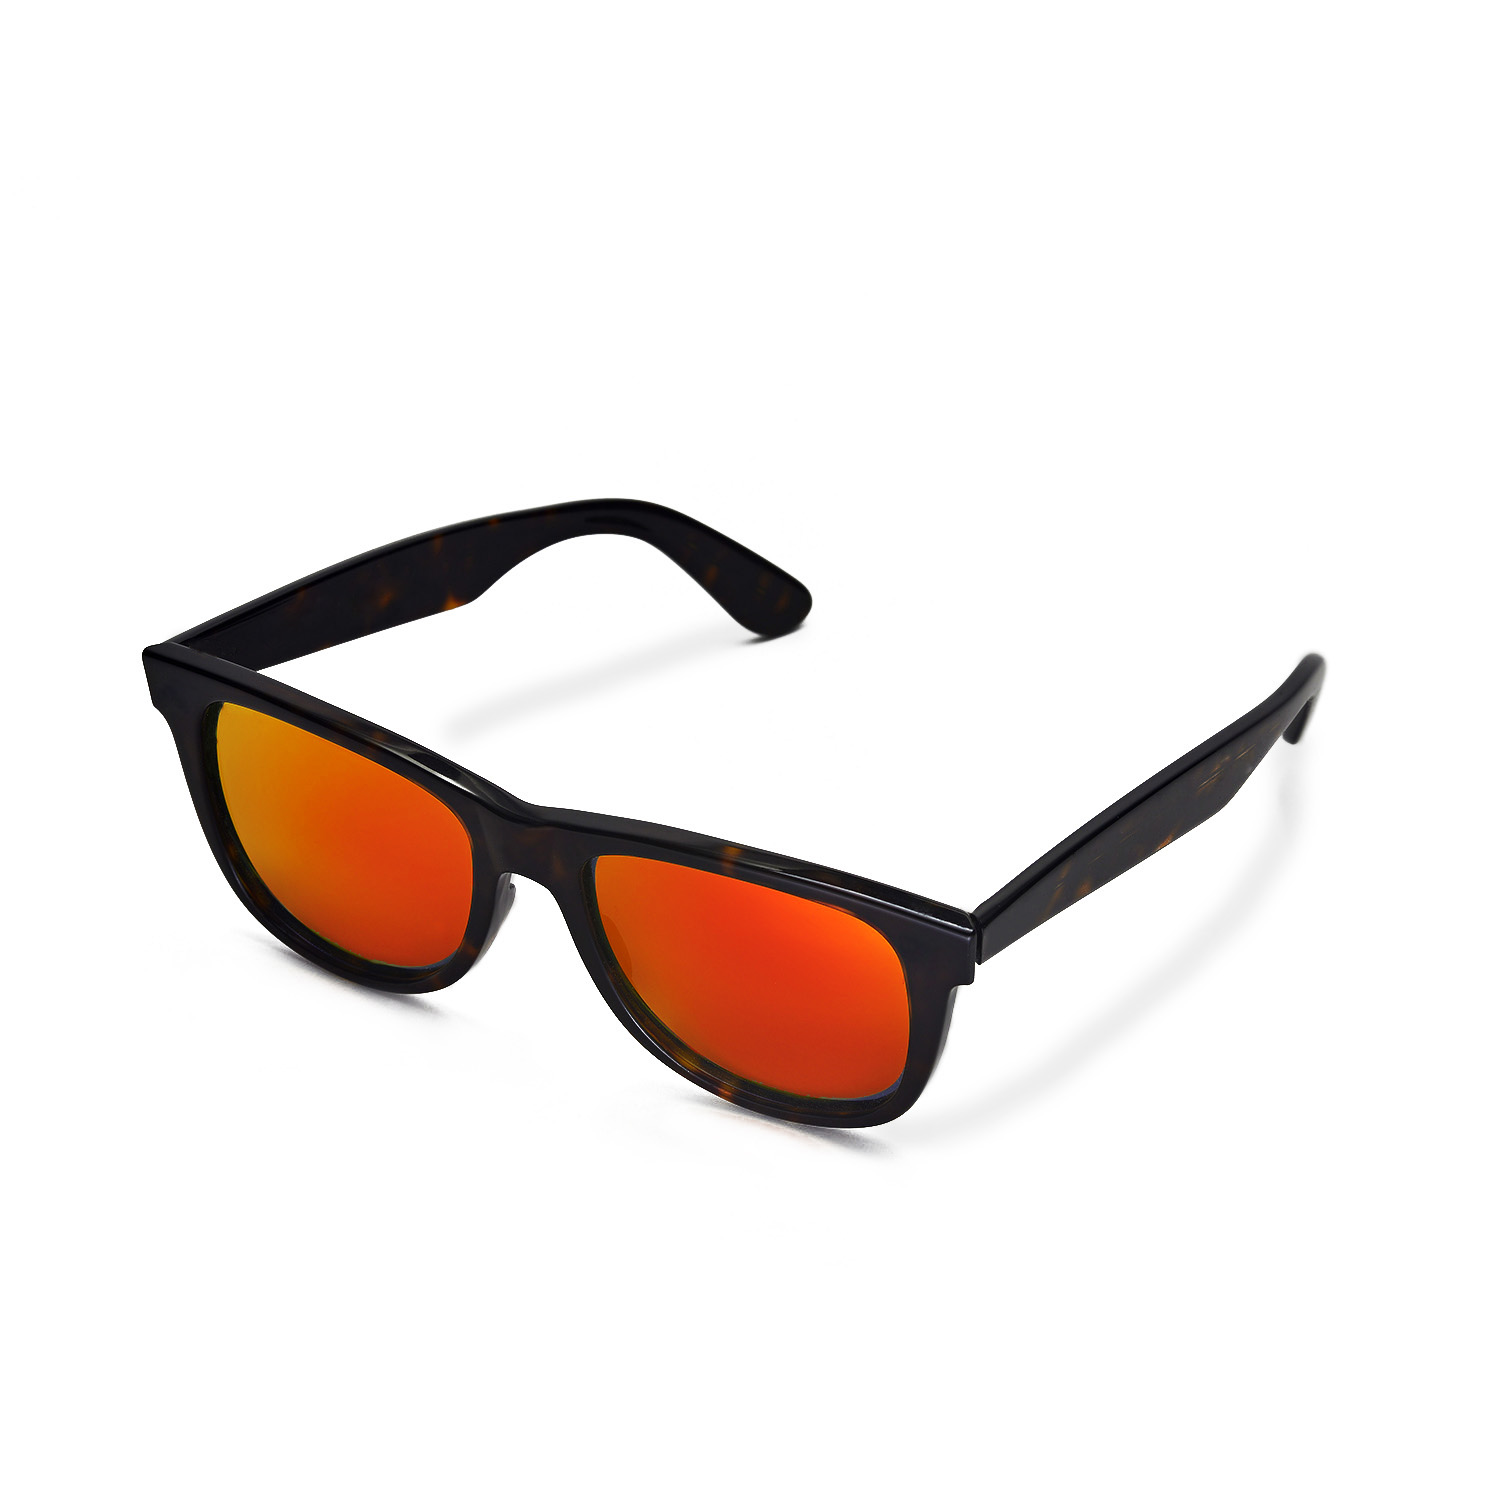 81a0c1bdb6 Details about New Walleva Polarized Fire Red Lenses For Ray-Ban Wayfarer  RB2140 54mm